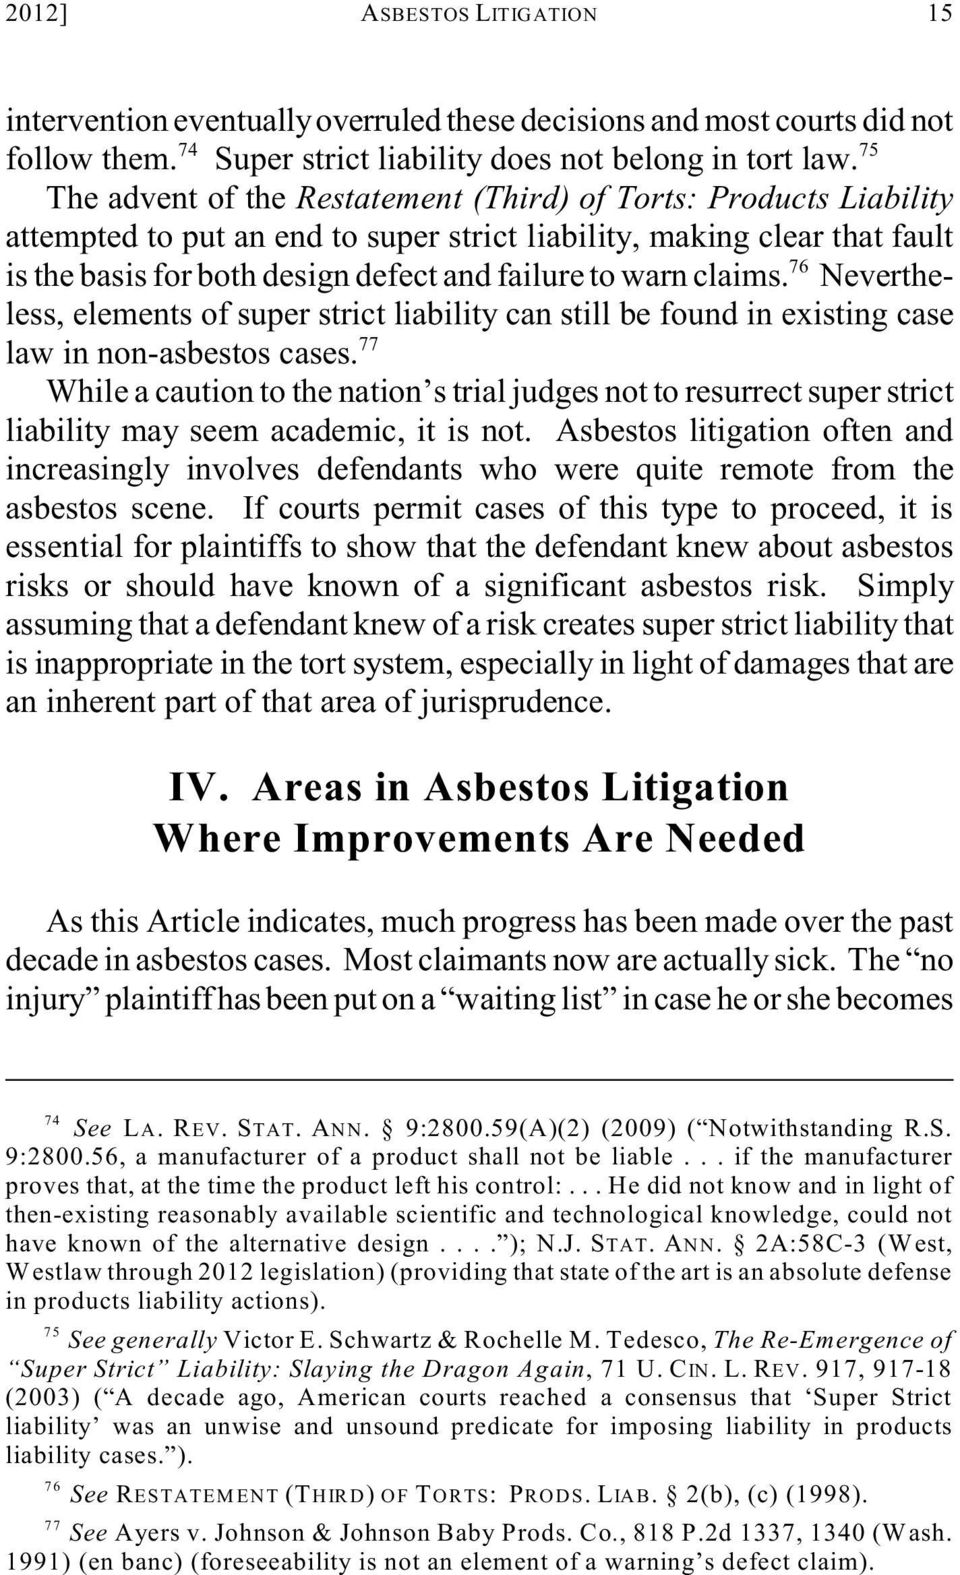 warn claims. Nevertheless, elements of super strict liability can still be found in existing case law in non-asbestos cases.